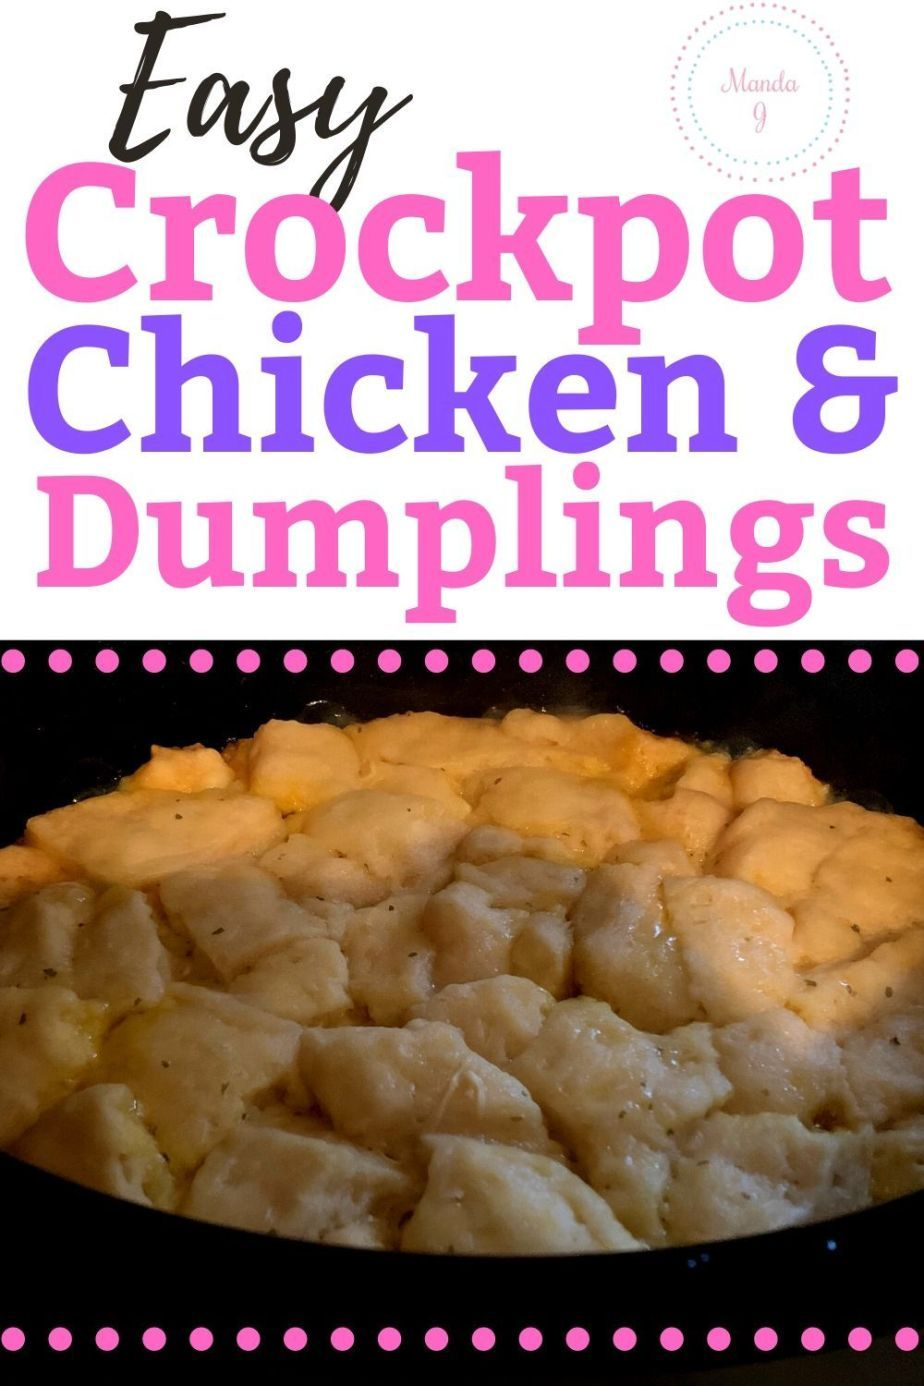 Crock Pot Chicken and Dumplings Using Canned Biscuits - Manda J